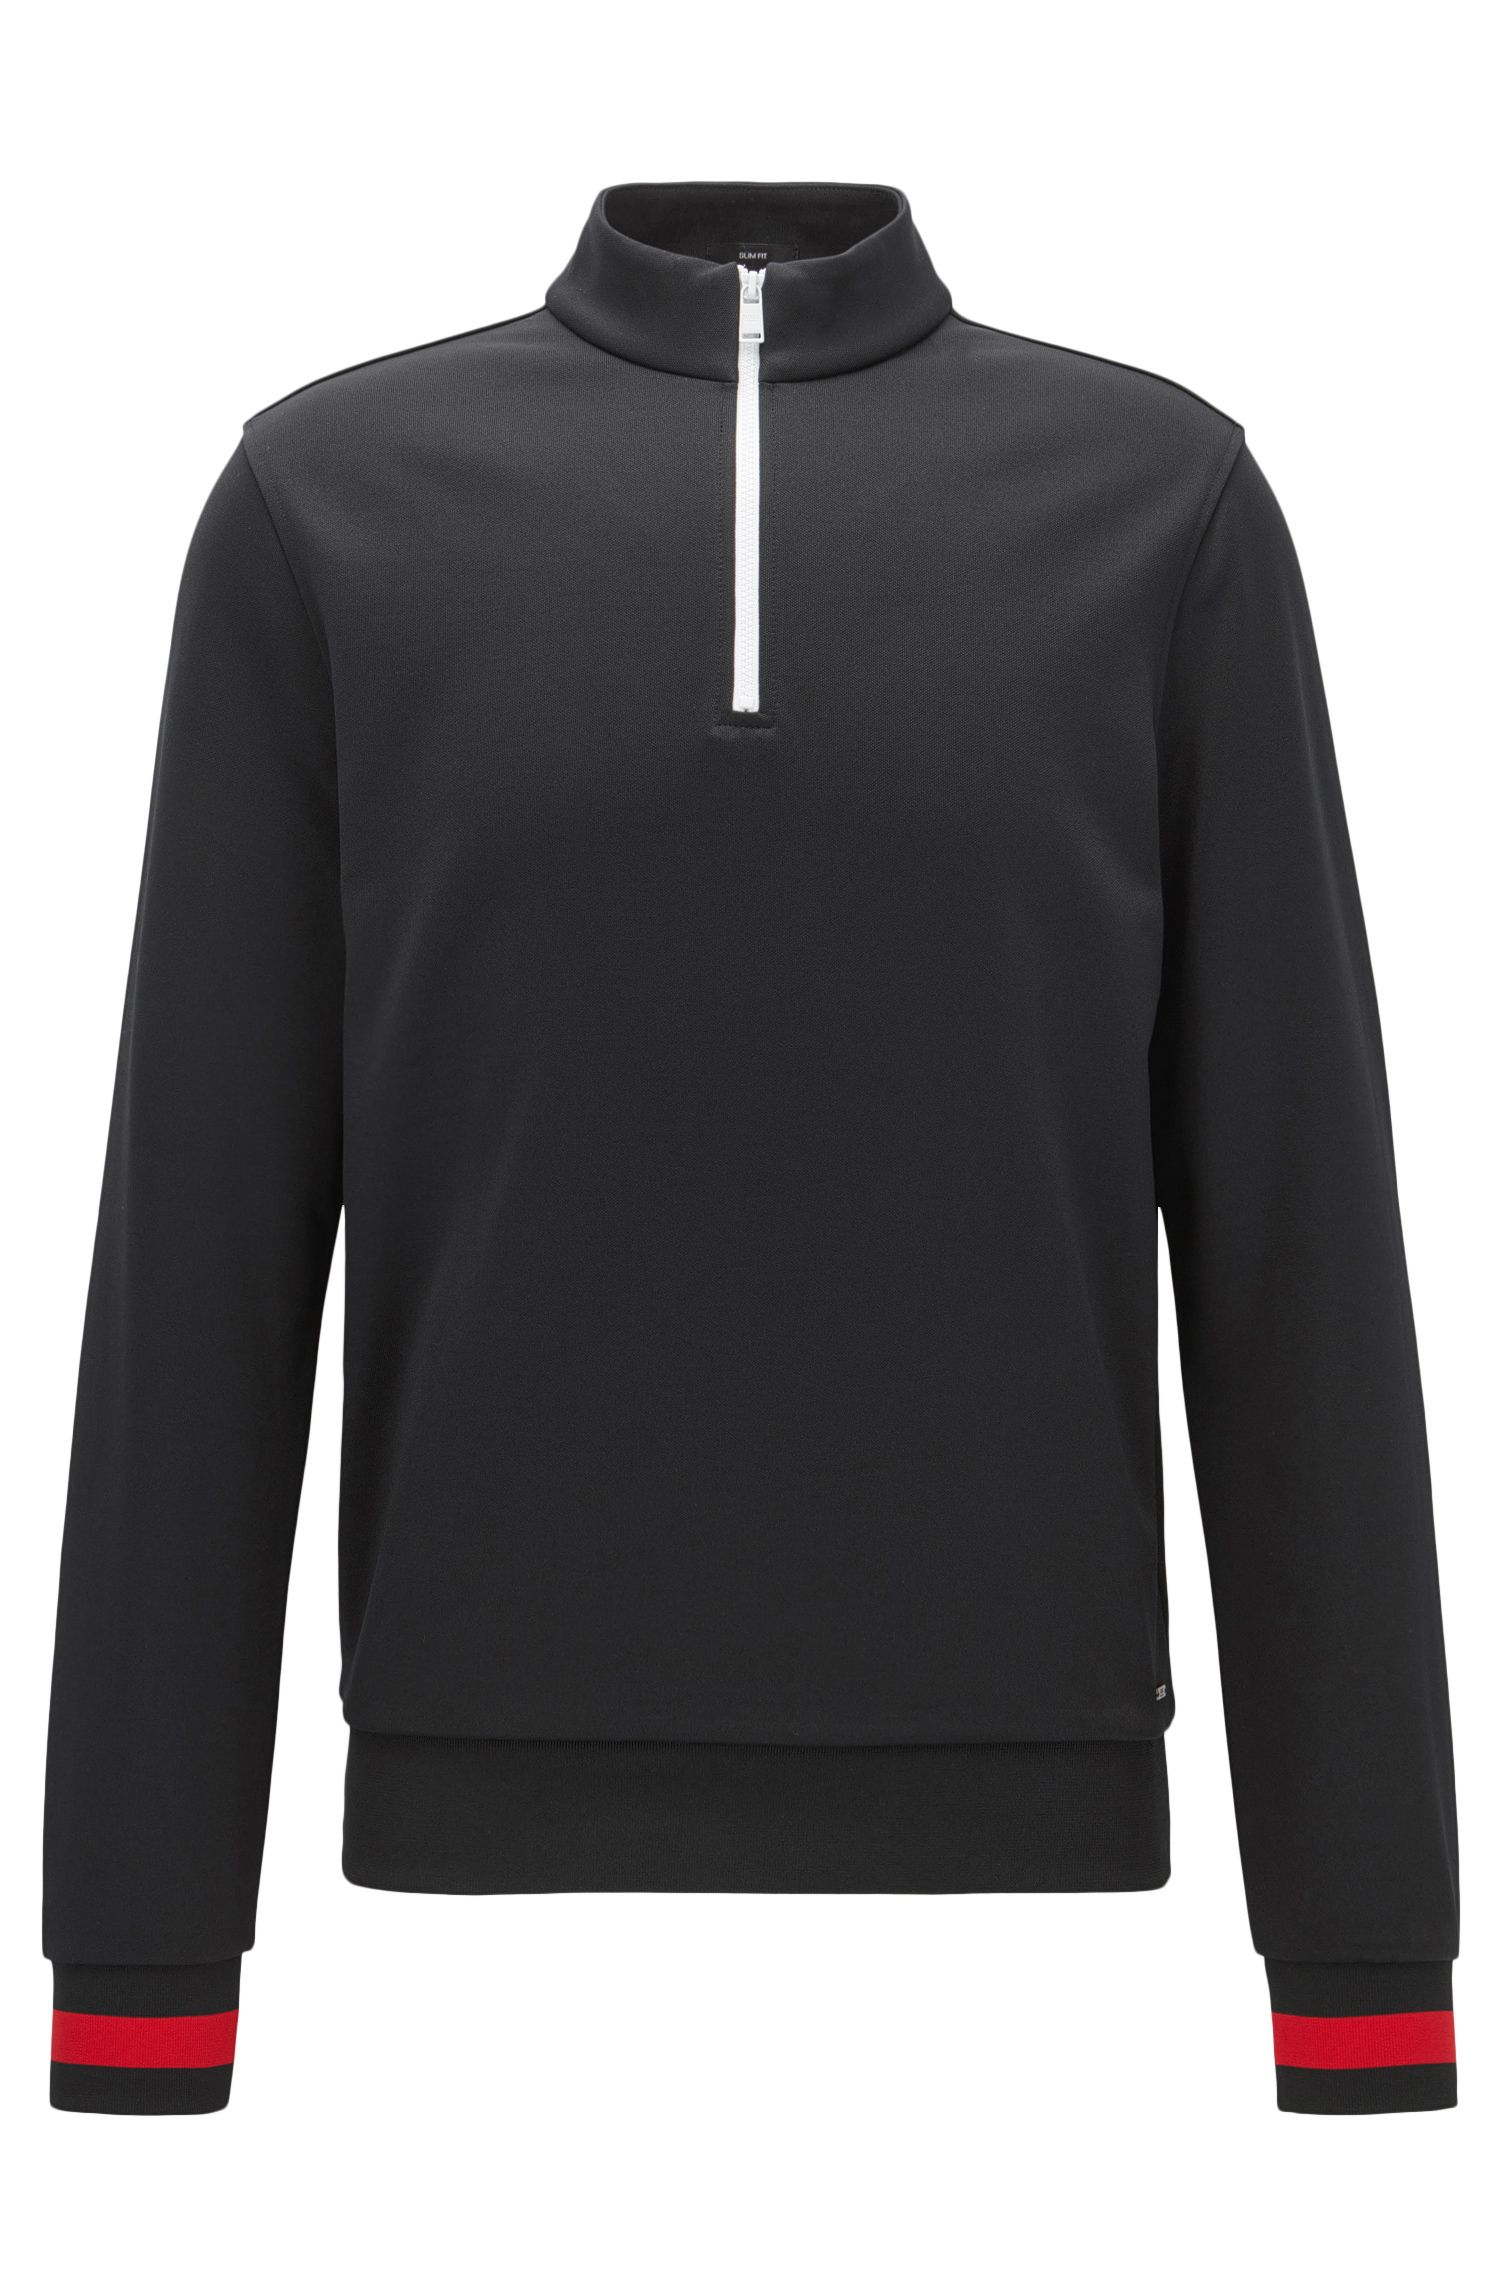 Jersey Half-Zip Sweater | Siegal